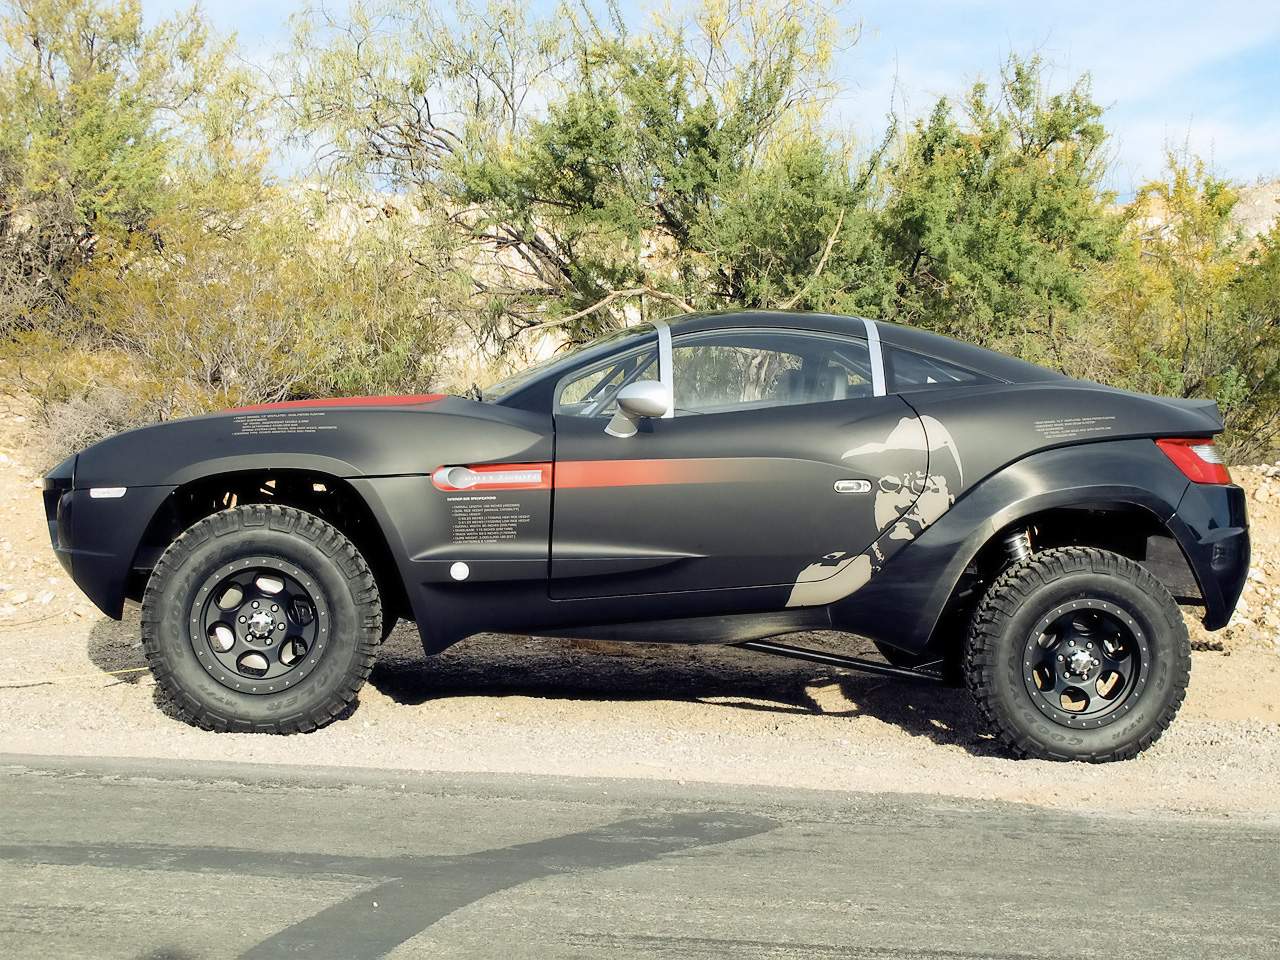 2011 Local Motors Rally Fighter Image. Photo 17 of 43